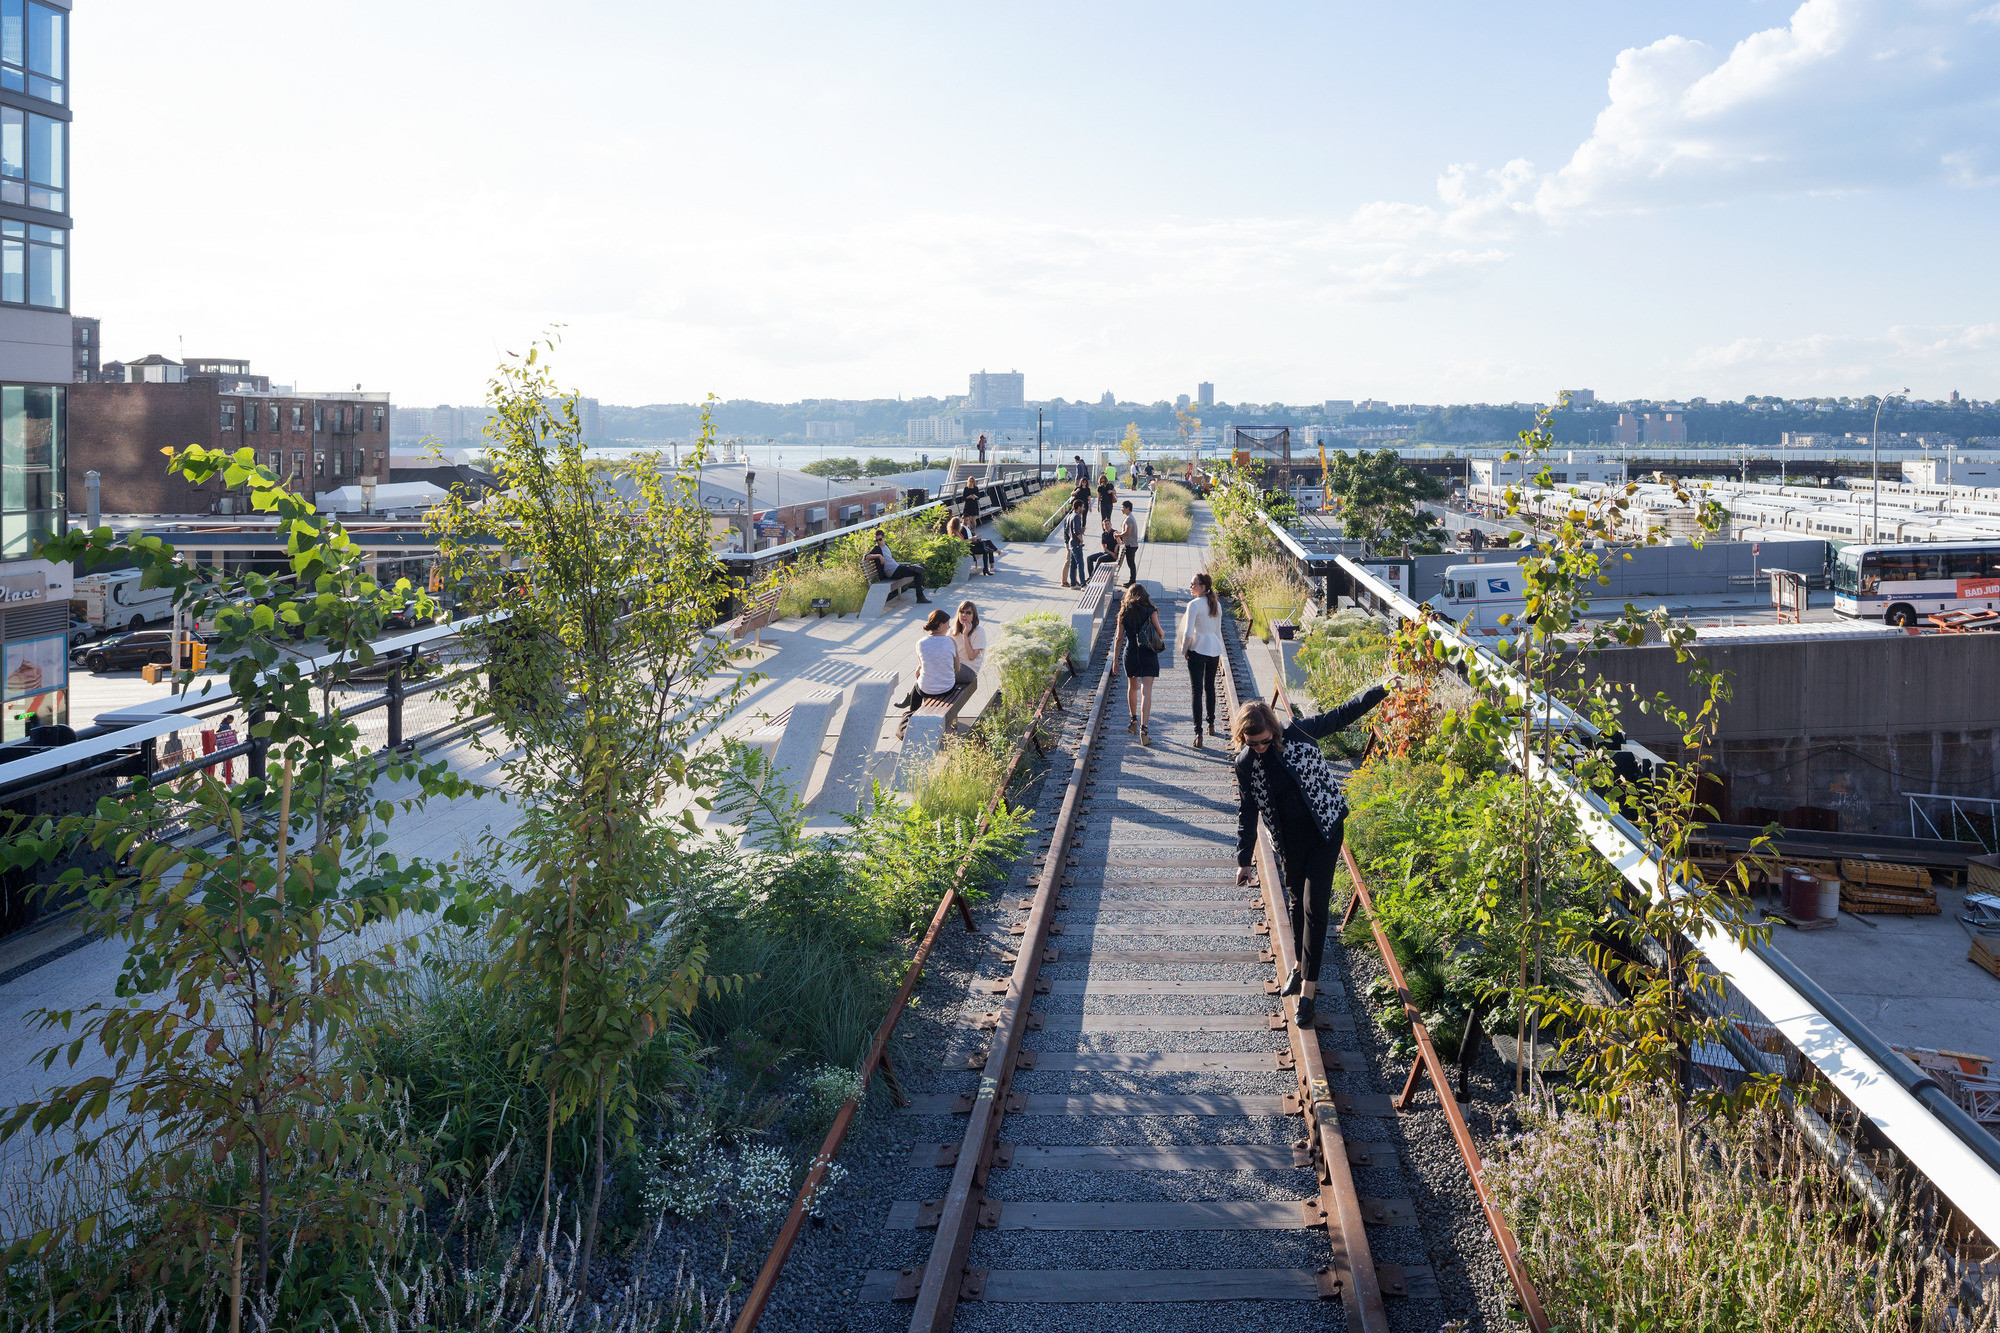 The High Line's Final Chapter is Complete; But Don't Close the Book Just Yet, View looking west along one of the Rail Track Walks. Image © Iwan Baan, 2014 (Section 3)